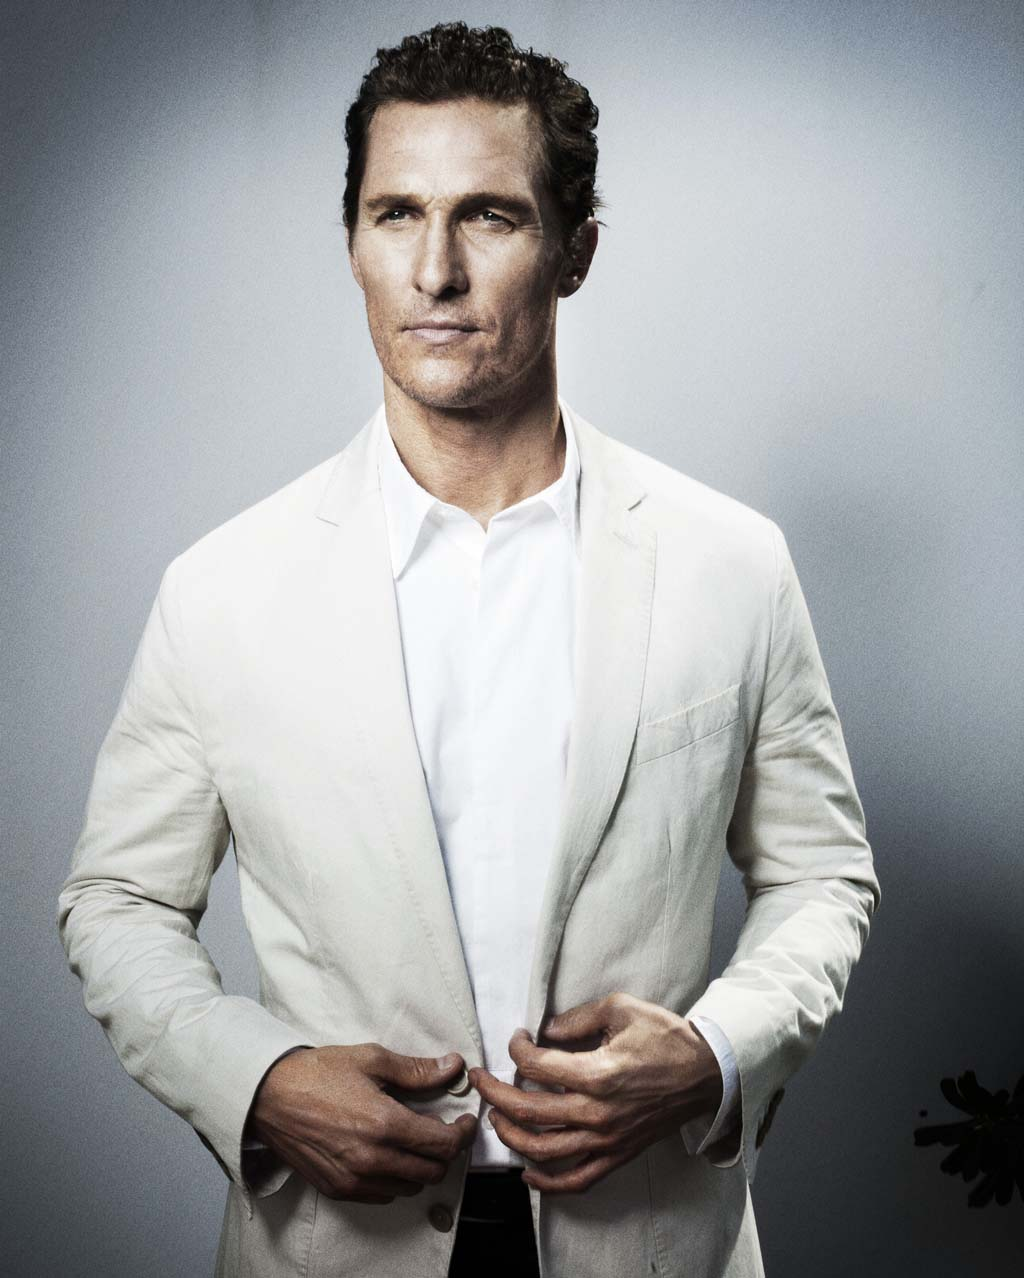 Mathew Mcconaughey 10 Celebrities with the Extremely Gross Hygiene Practices